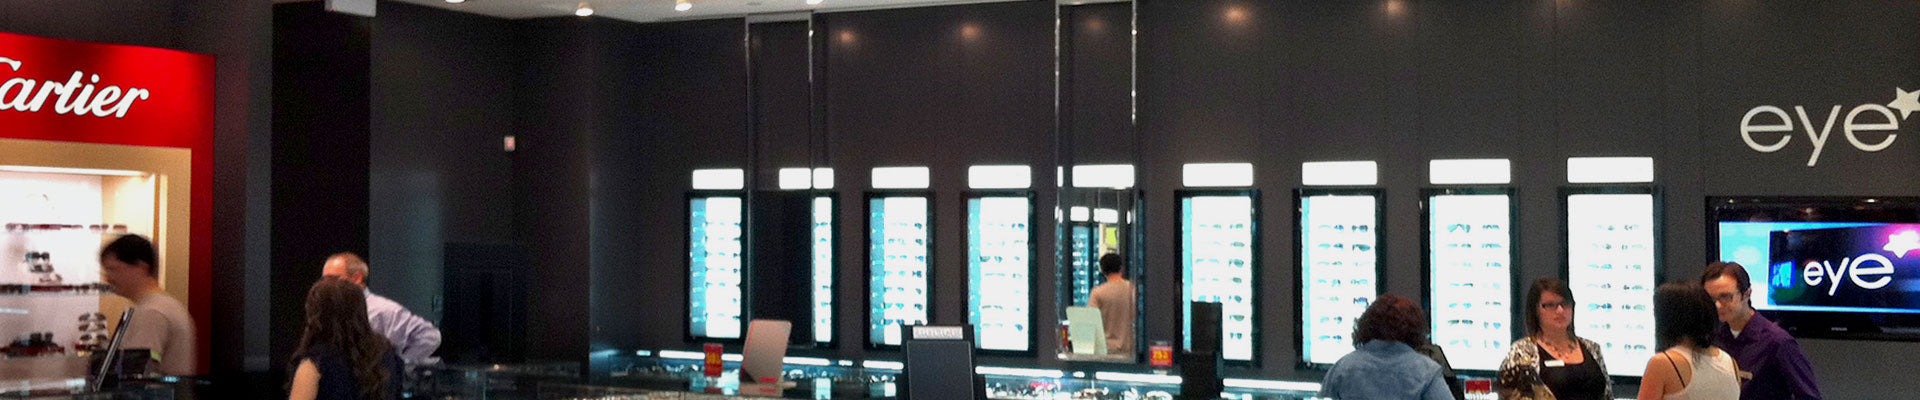 Eyestar Optical - Upper Canada Mall